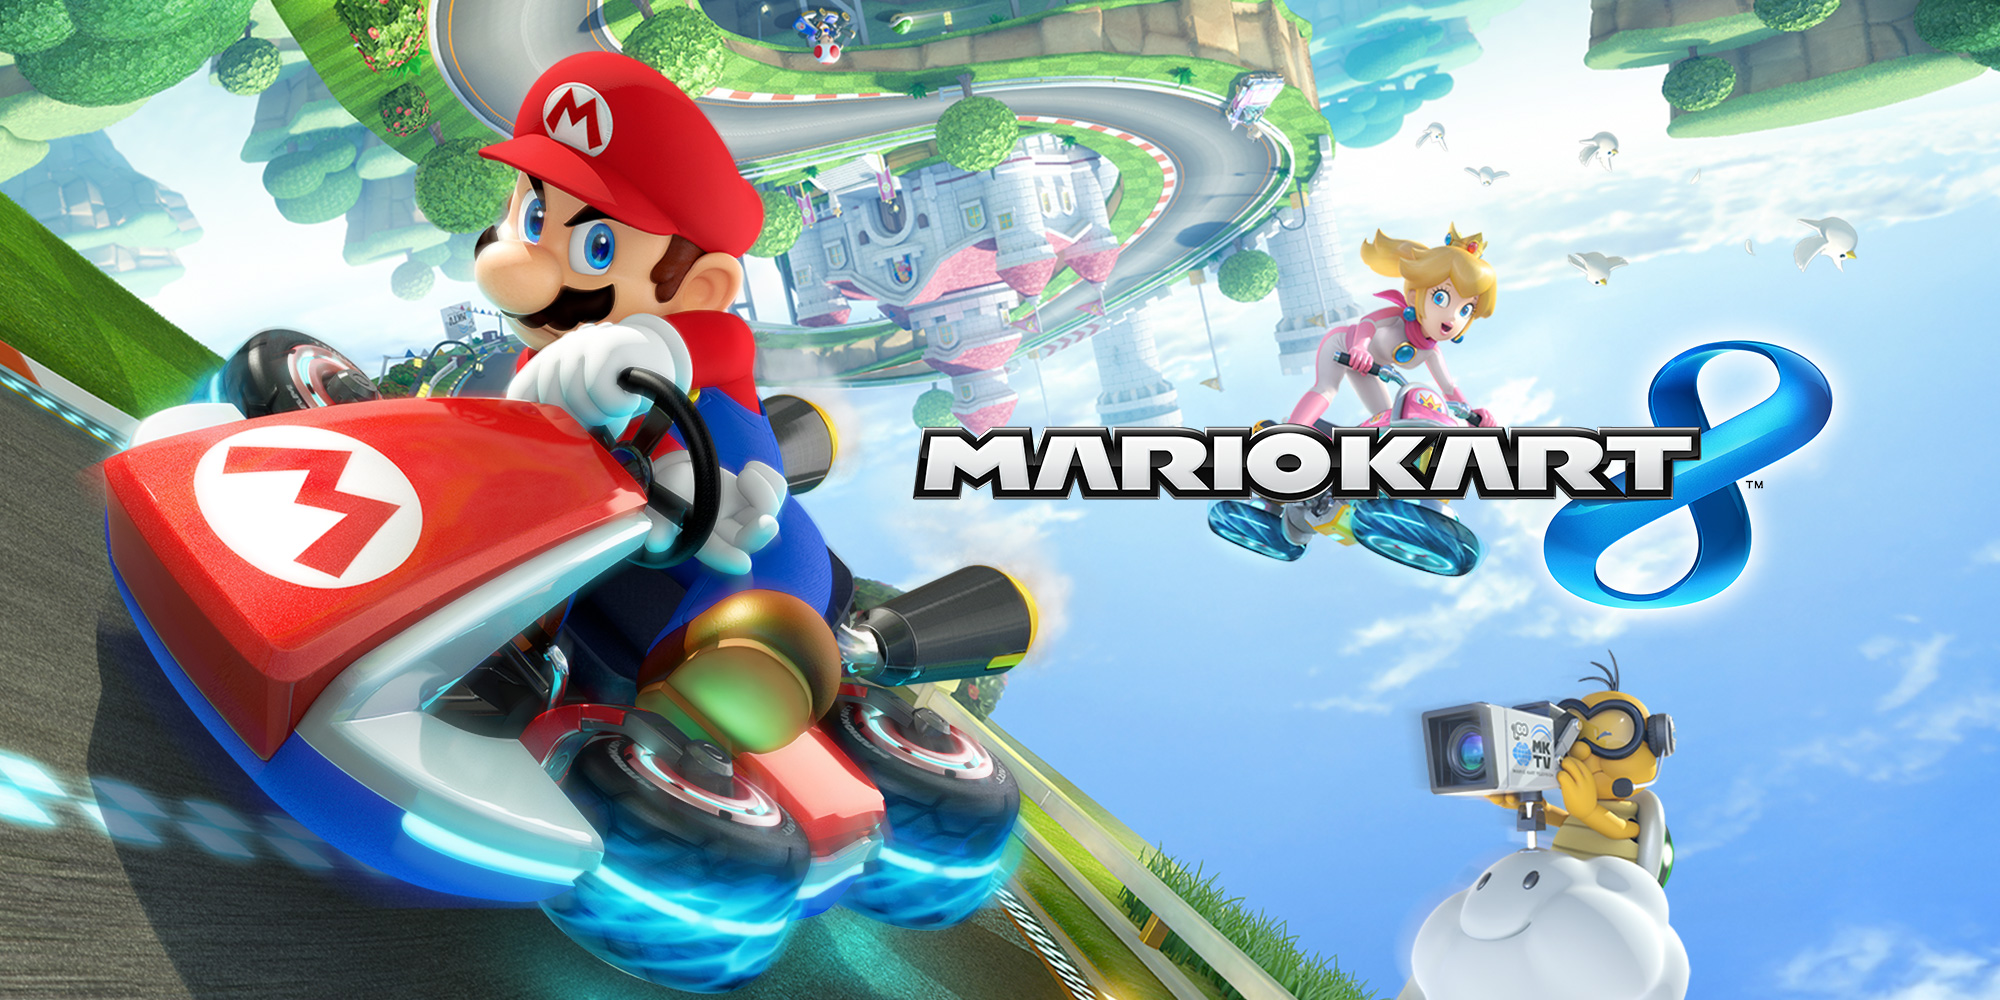 Nintendo adds three Mercedes-Benz cars and enhancements to Mario Kart 8 from 27th August